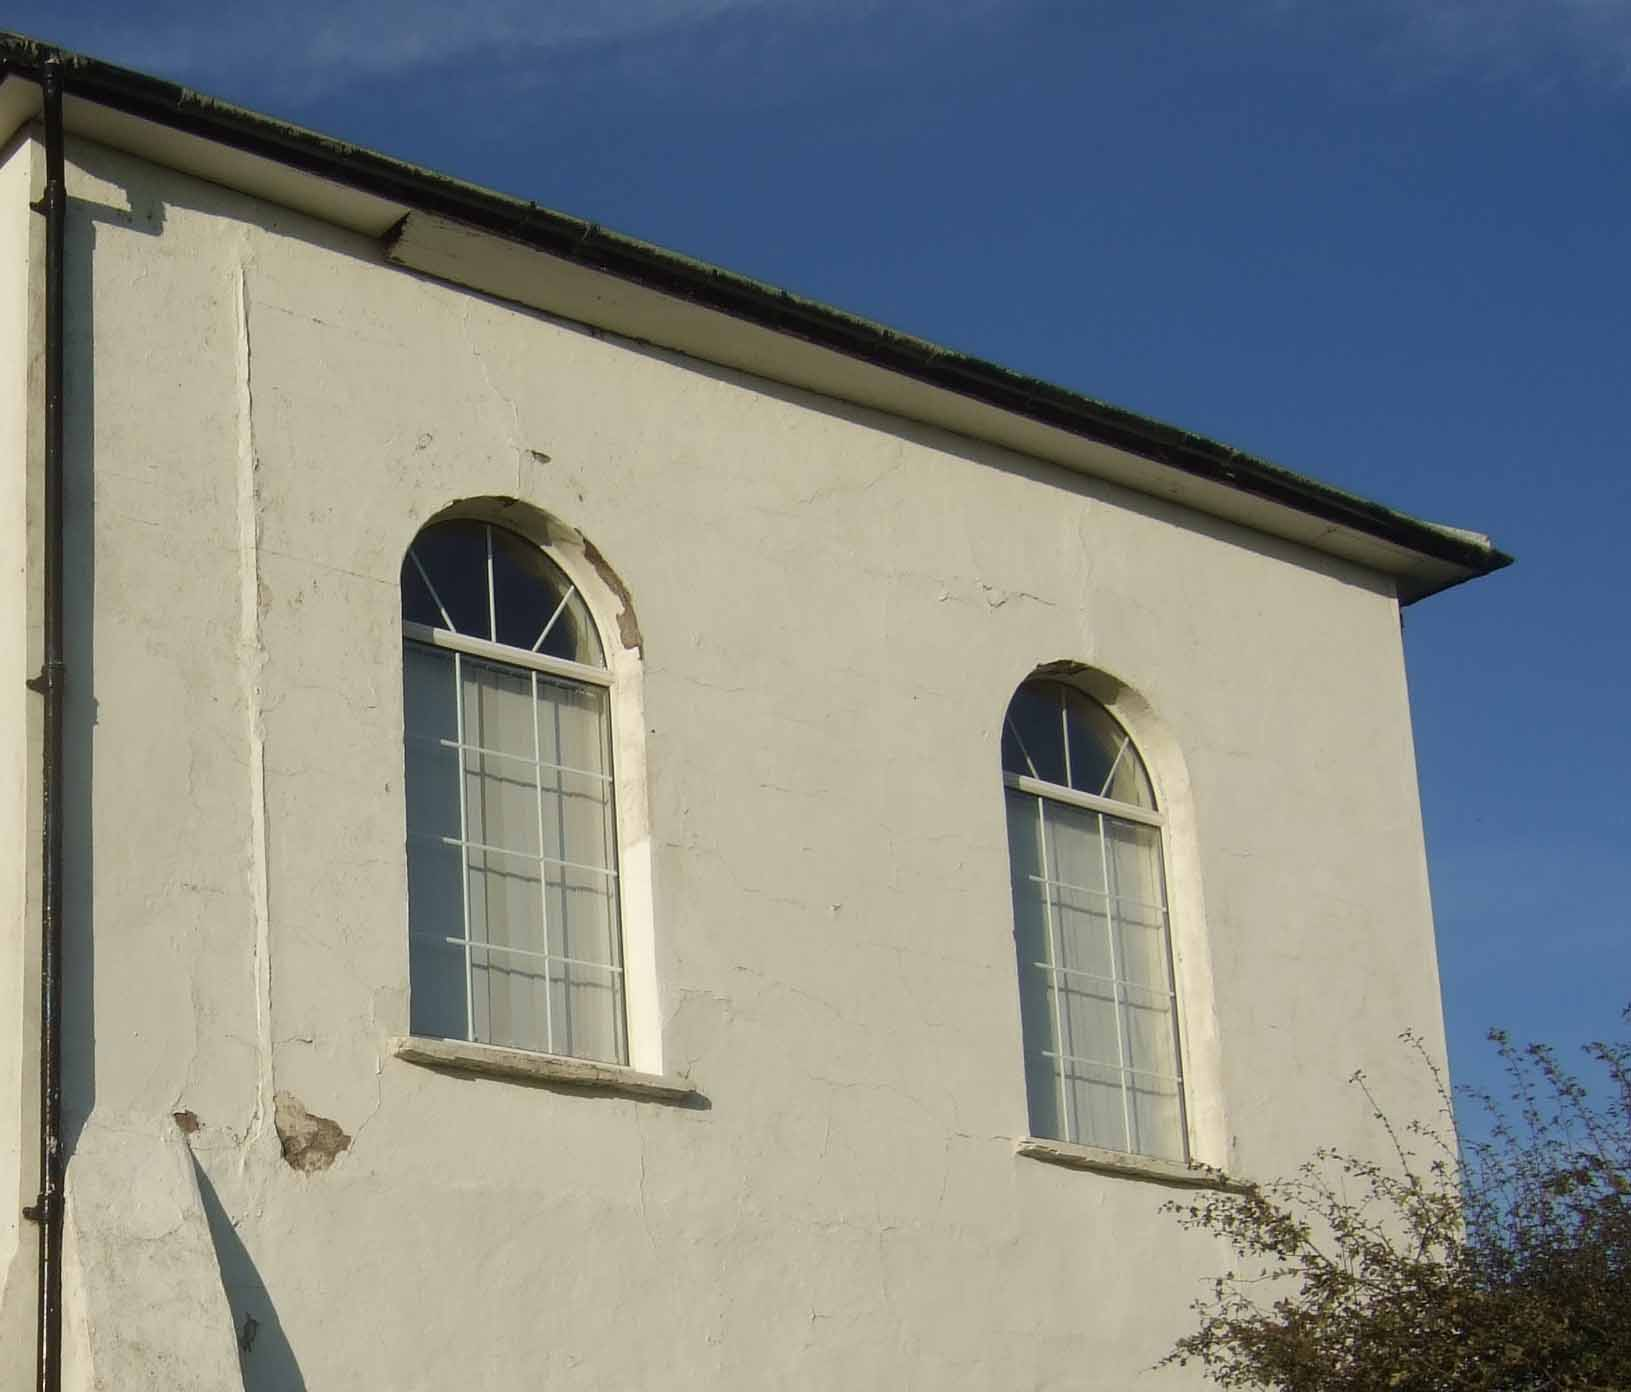 The Arched Windows